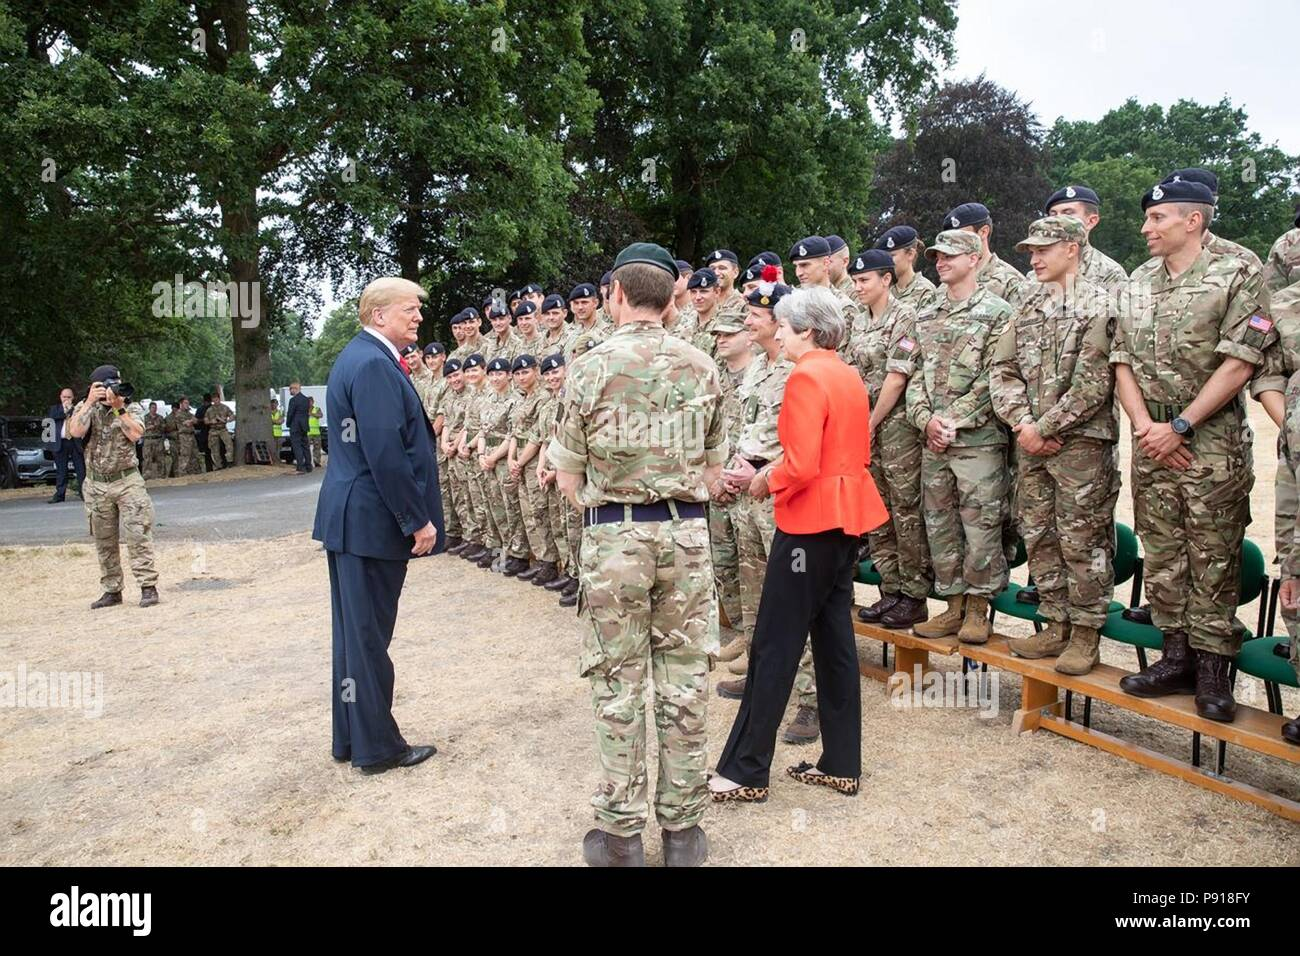 London, UK, 13 July 2018. British Prime Minister Theresa May introduces U.S President Donald Trump to the elite service SAS cadets at the Royal Military Academy Sandhurst July 13, 2018 in Camberley, England. Credit: Planetpix/Alamy Live News - Stock Image